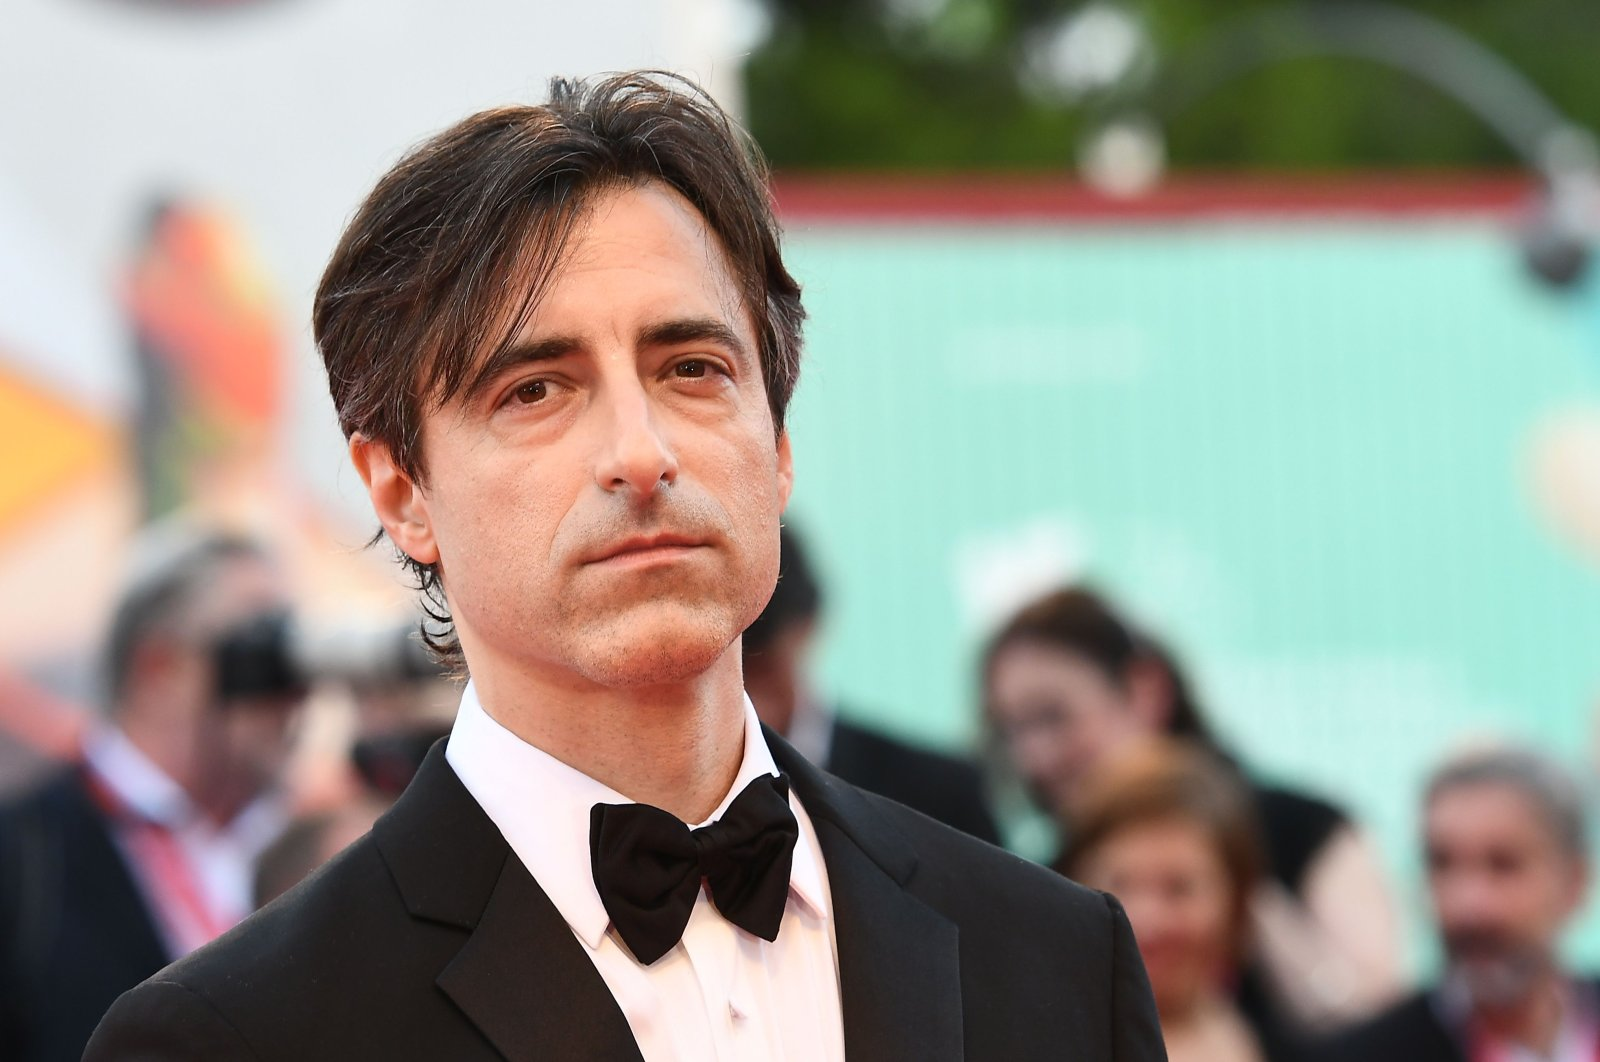 """U.S. director Noah Baumbach arrives for the screening of the film """"Marriage Story"""" during the 76th Venice Film Festival at Venice Lido, Aug. 29, 2019. (AFP Photo)"""